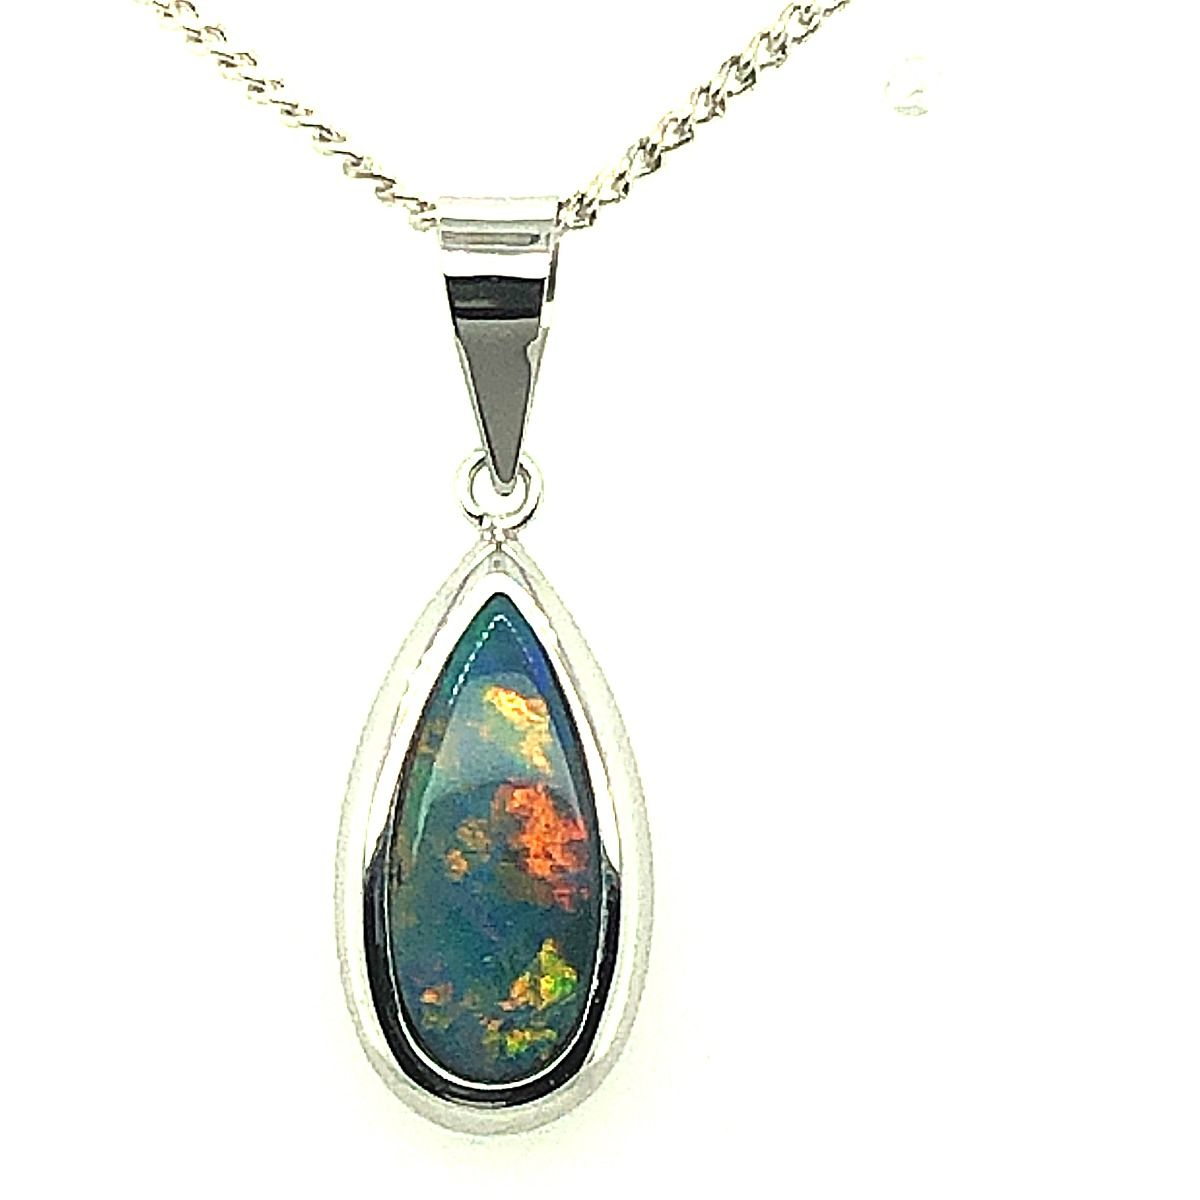 14ct White Gold Doublet Opal Pendant (13mmx6mm)